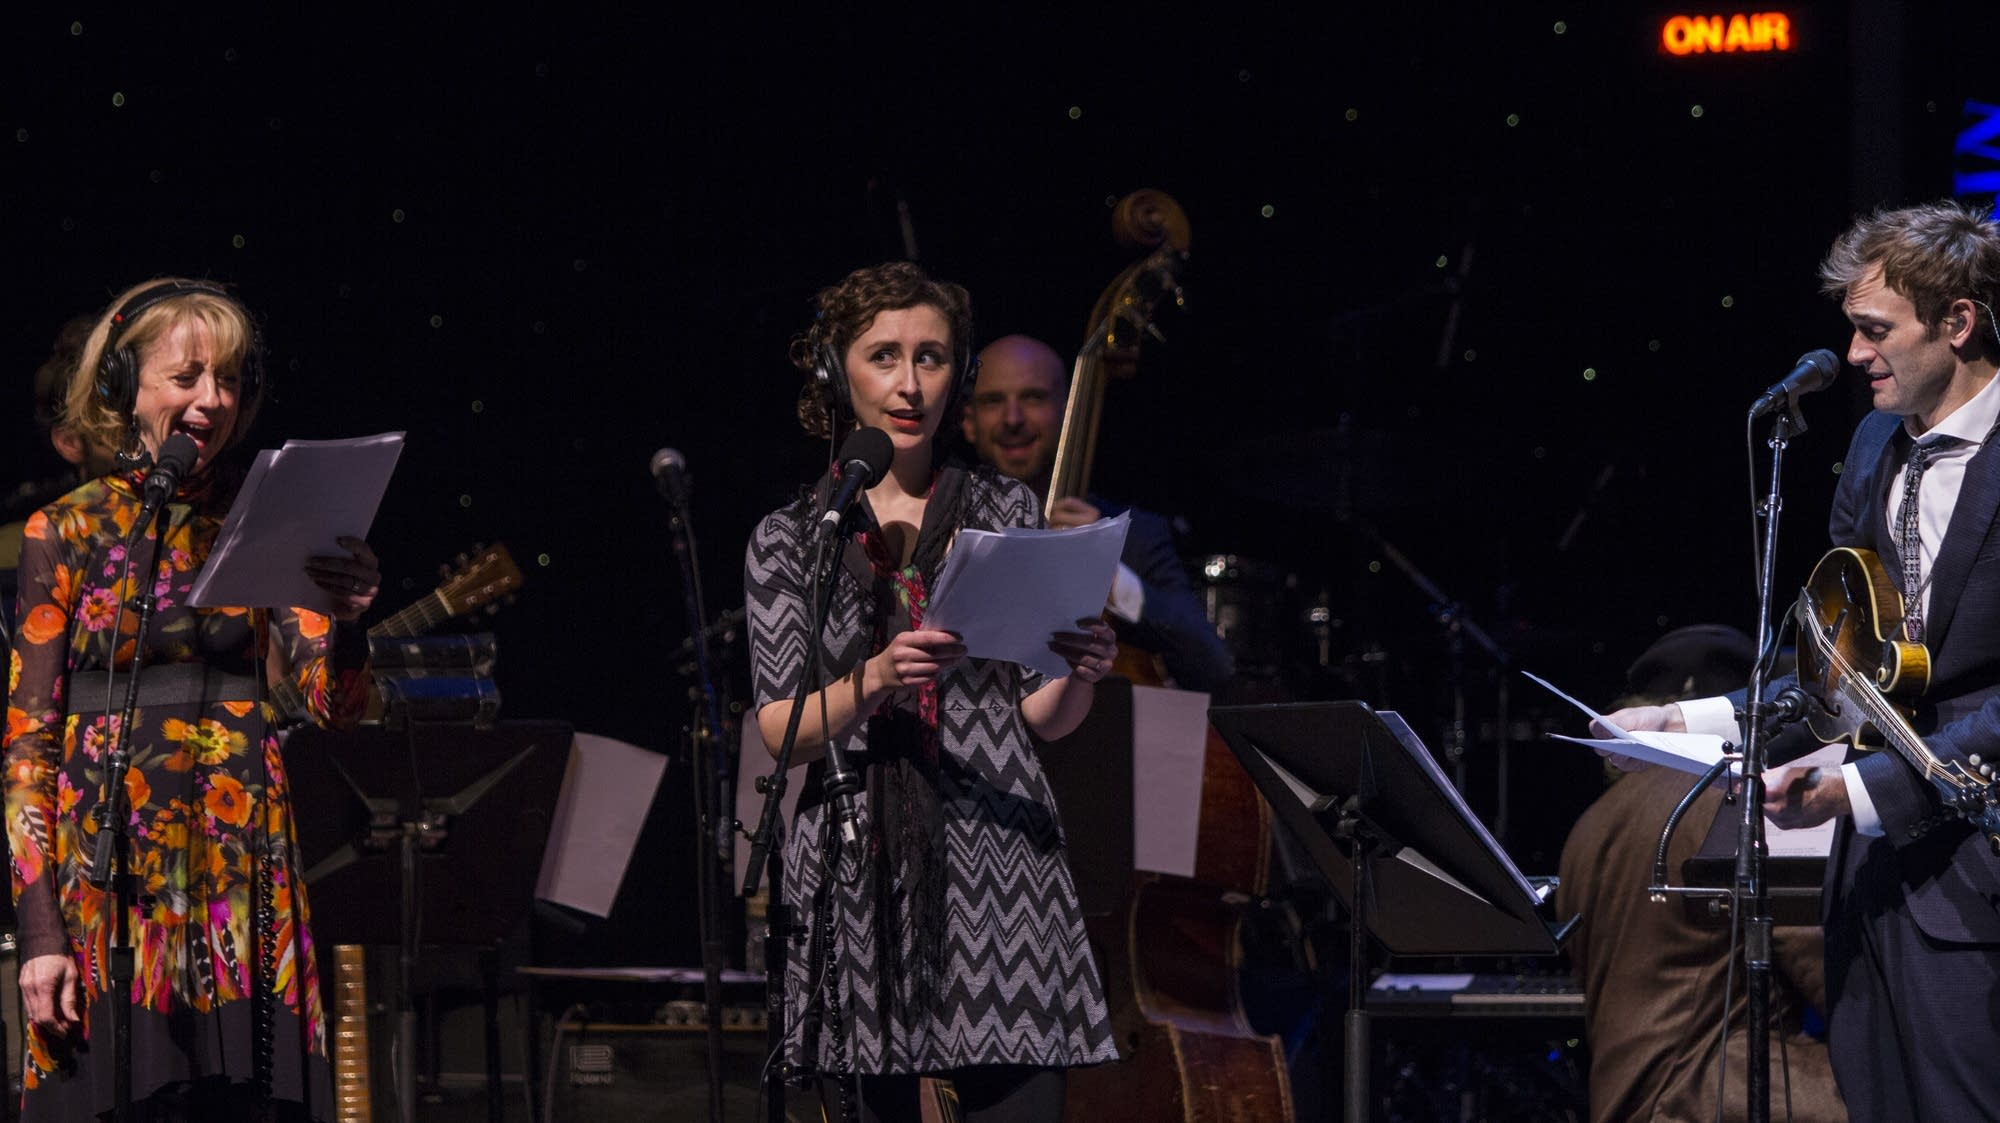 Sue Scott, Serena Brook, and Chris Thile